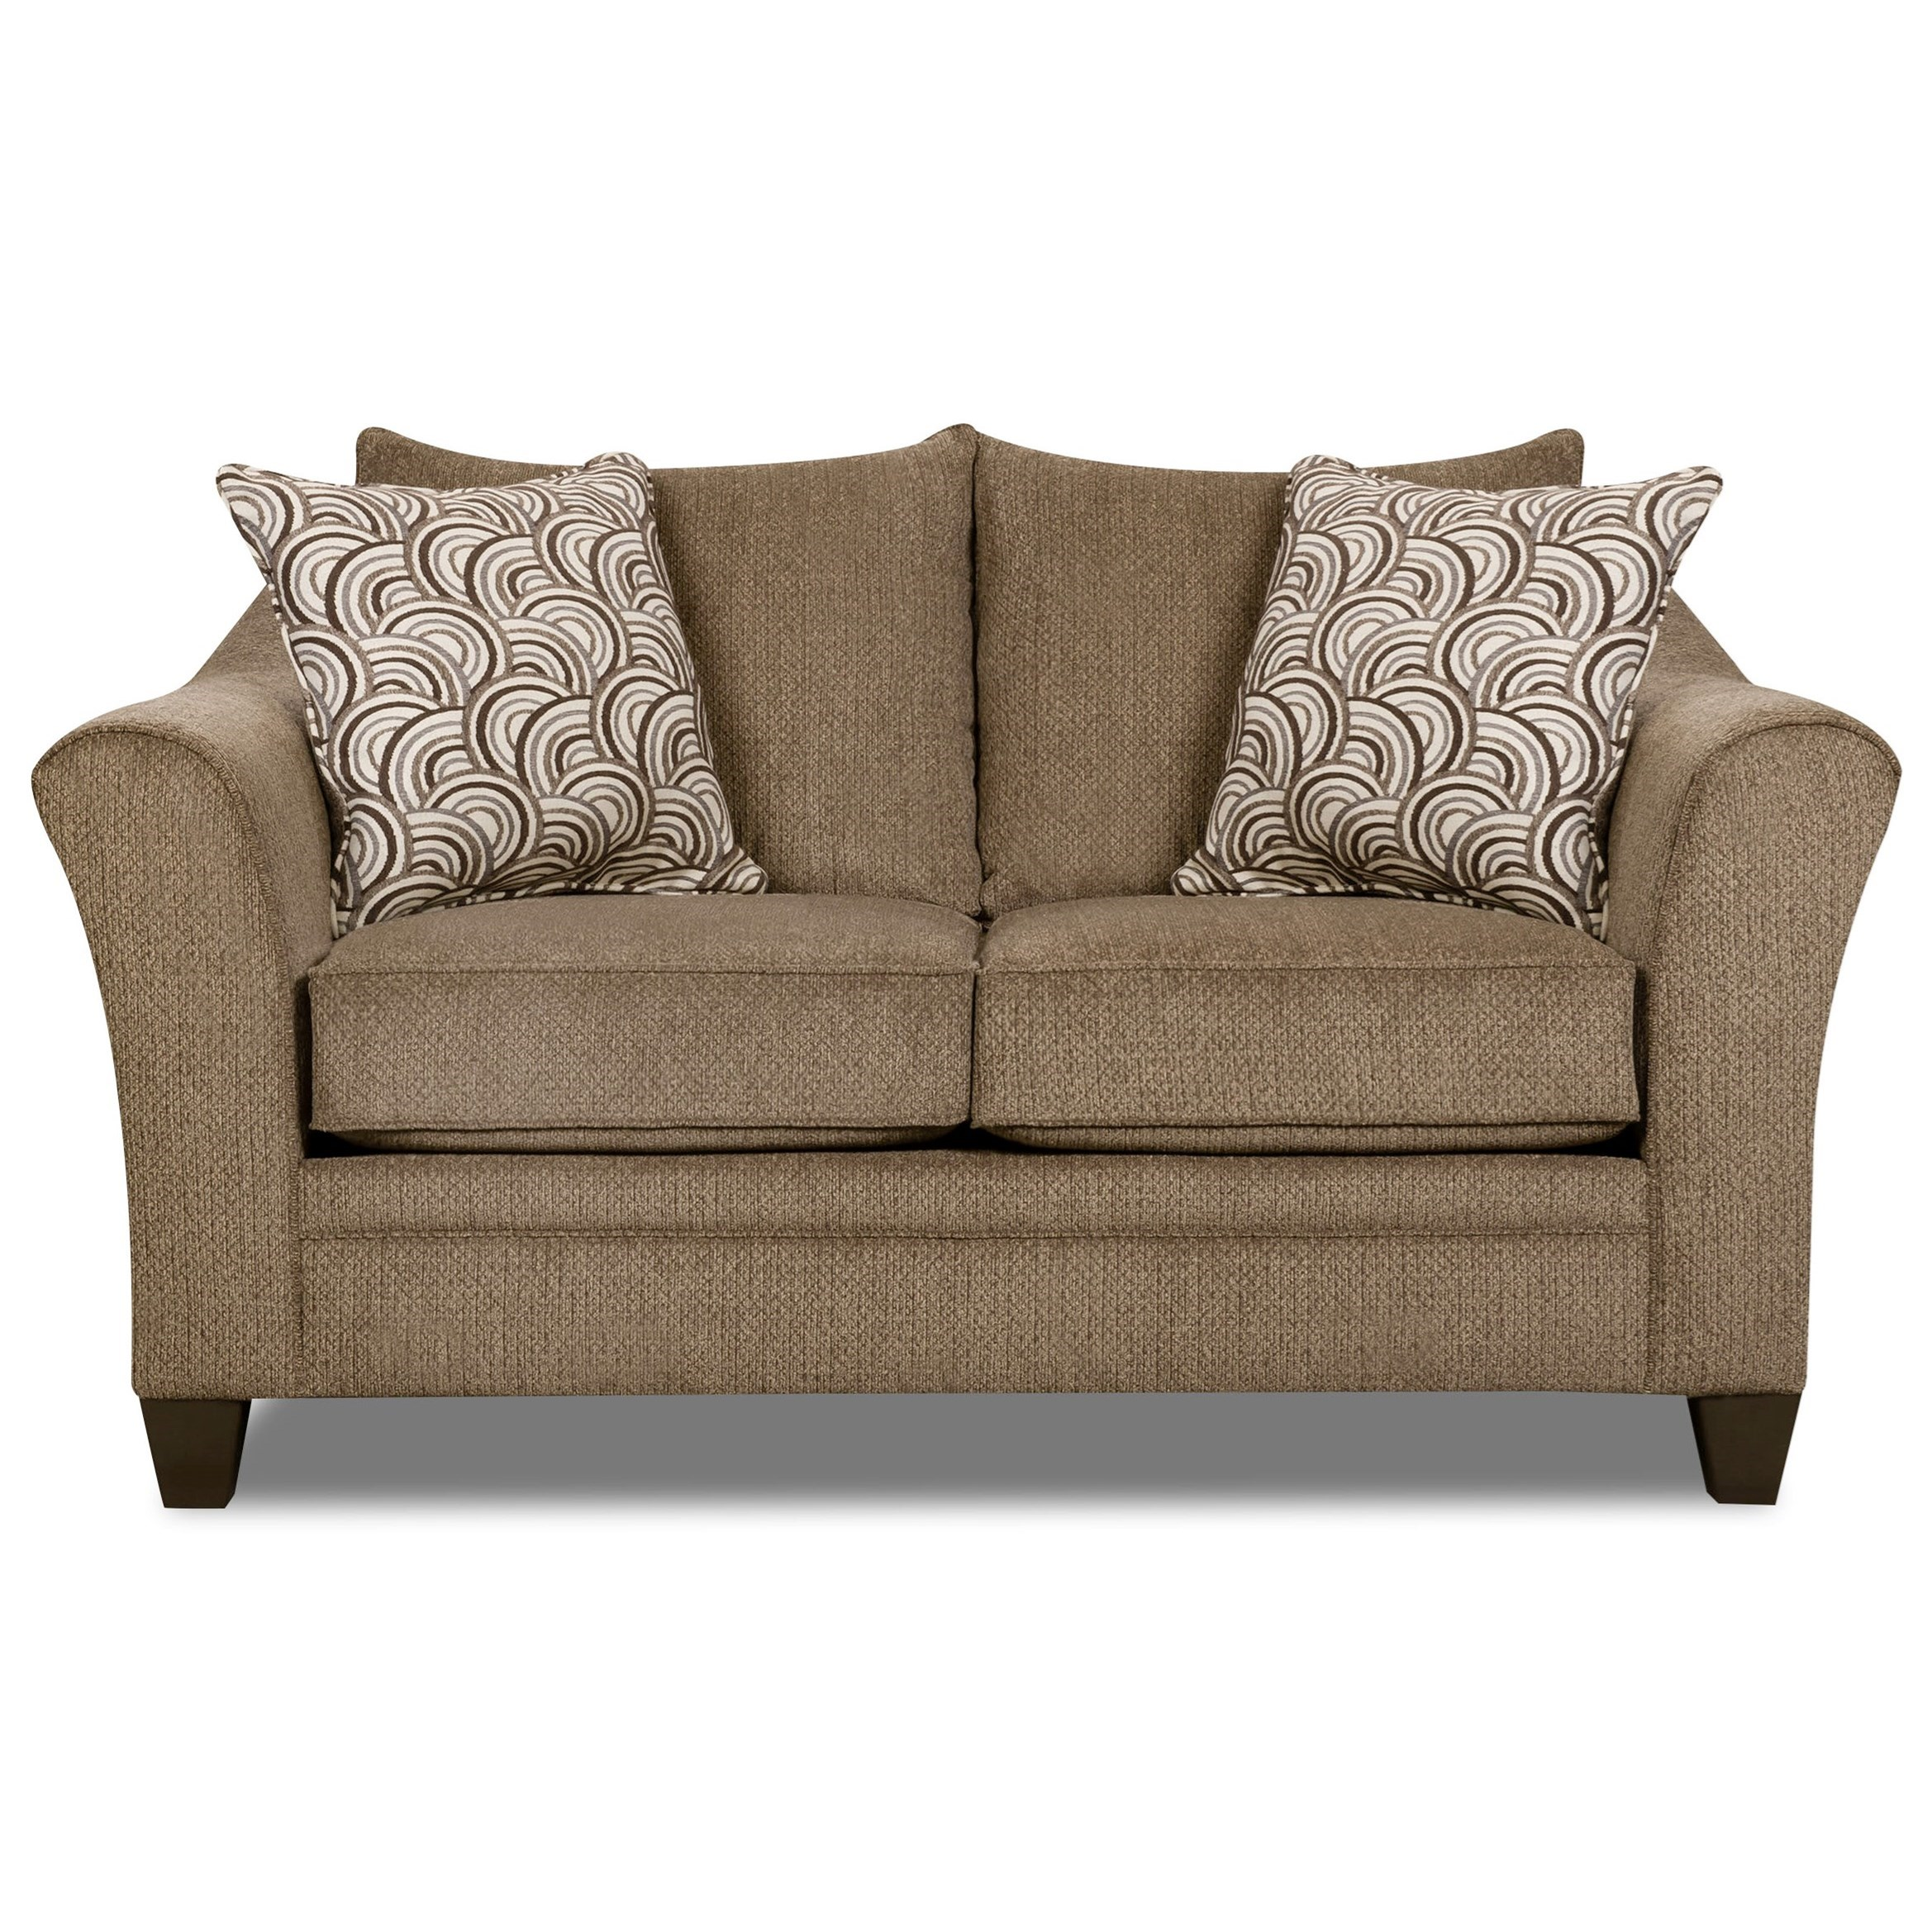 6485 Transitional Loveseat by United Furniture Industries at Dream Home Interiors